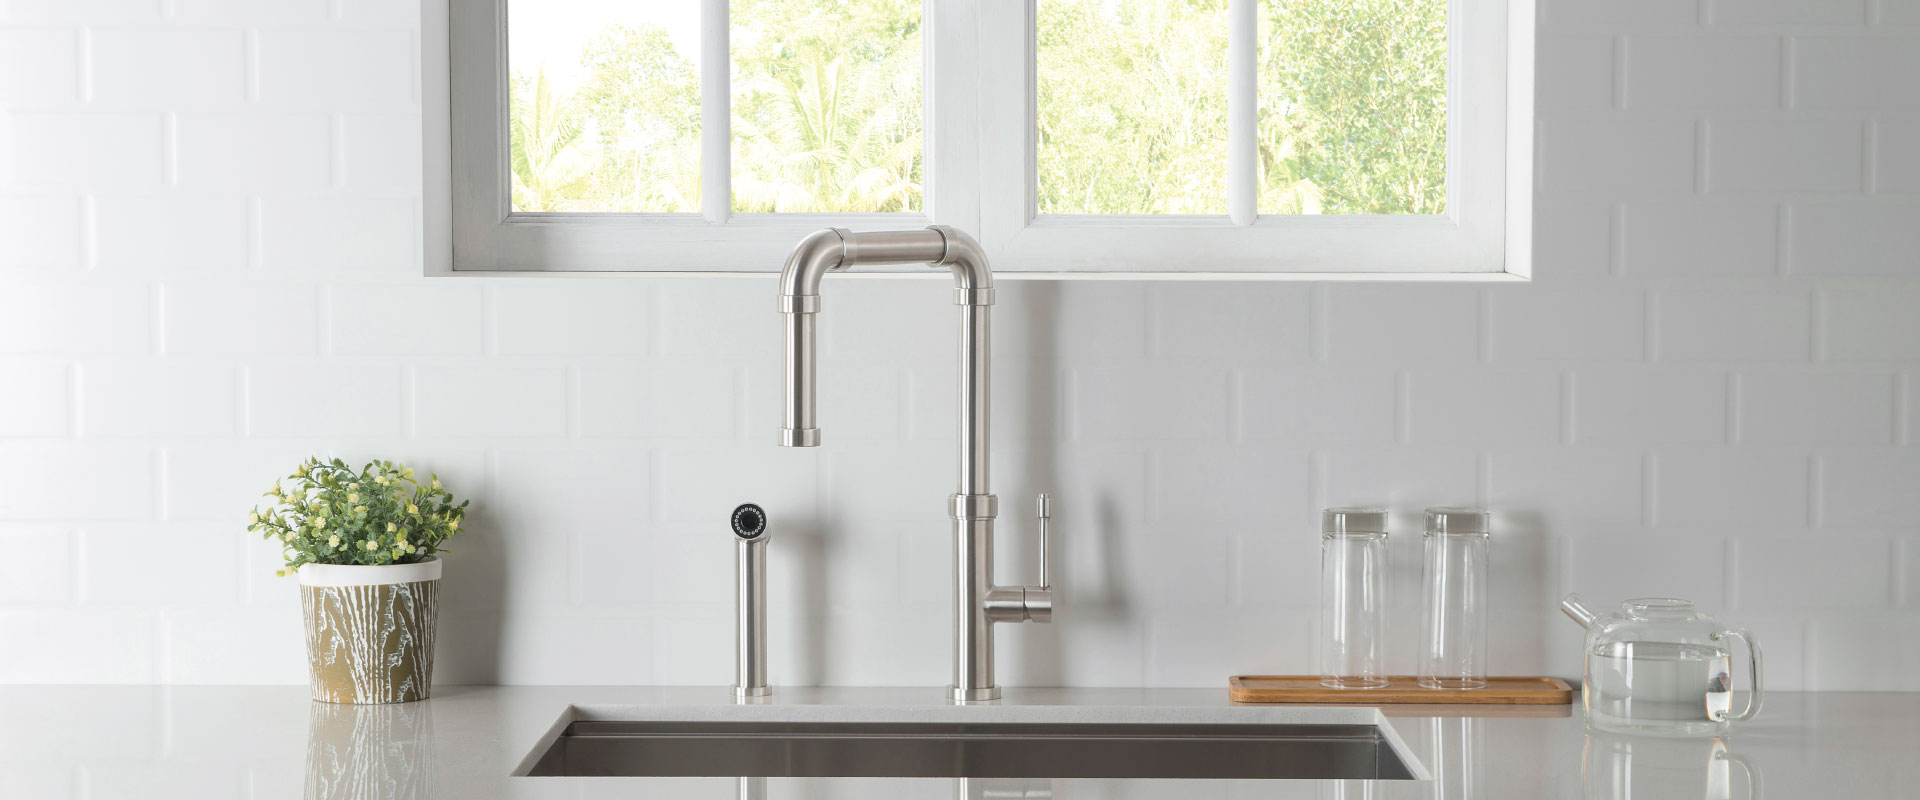 stainless steel kitchen faucet with side spray - white back splash